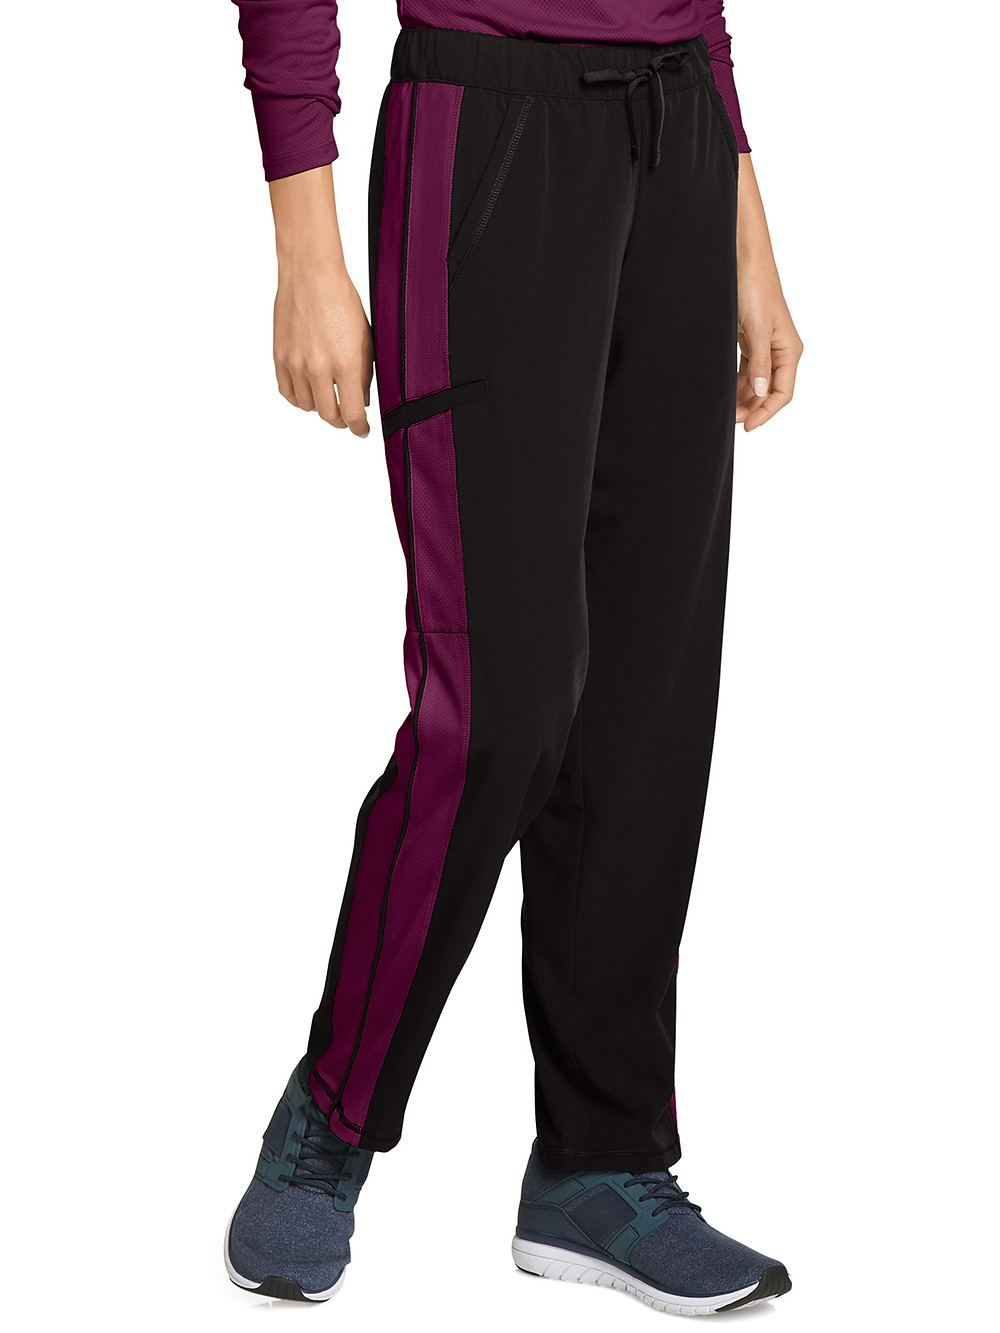 jockey retro windsprint scrub pant